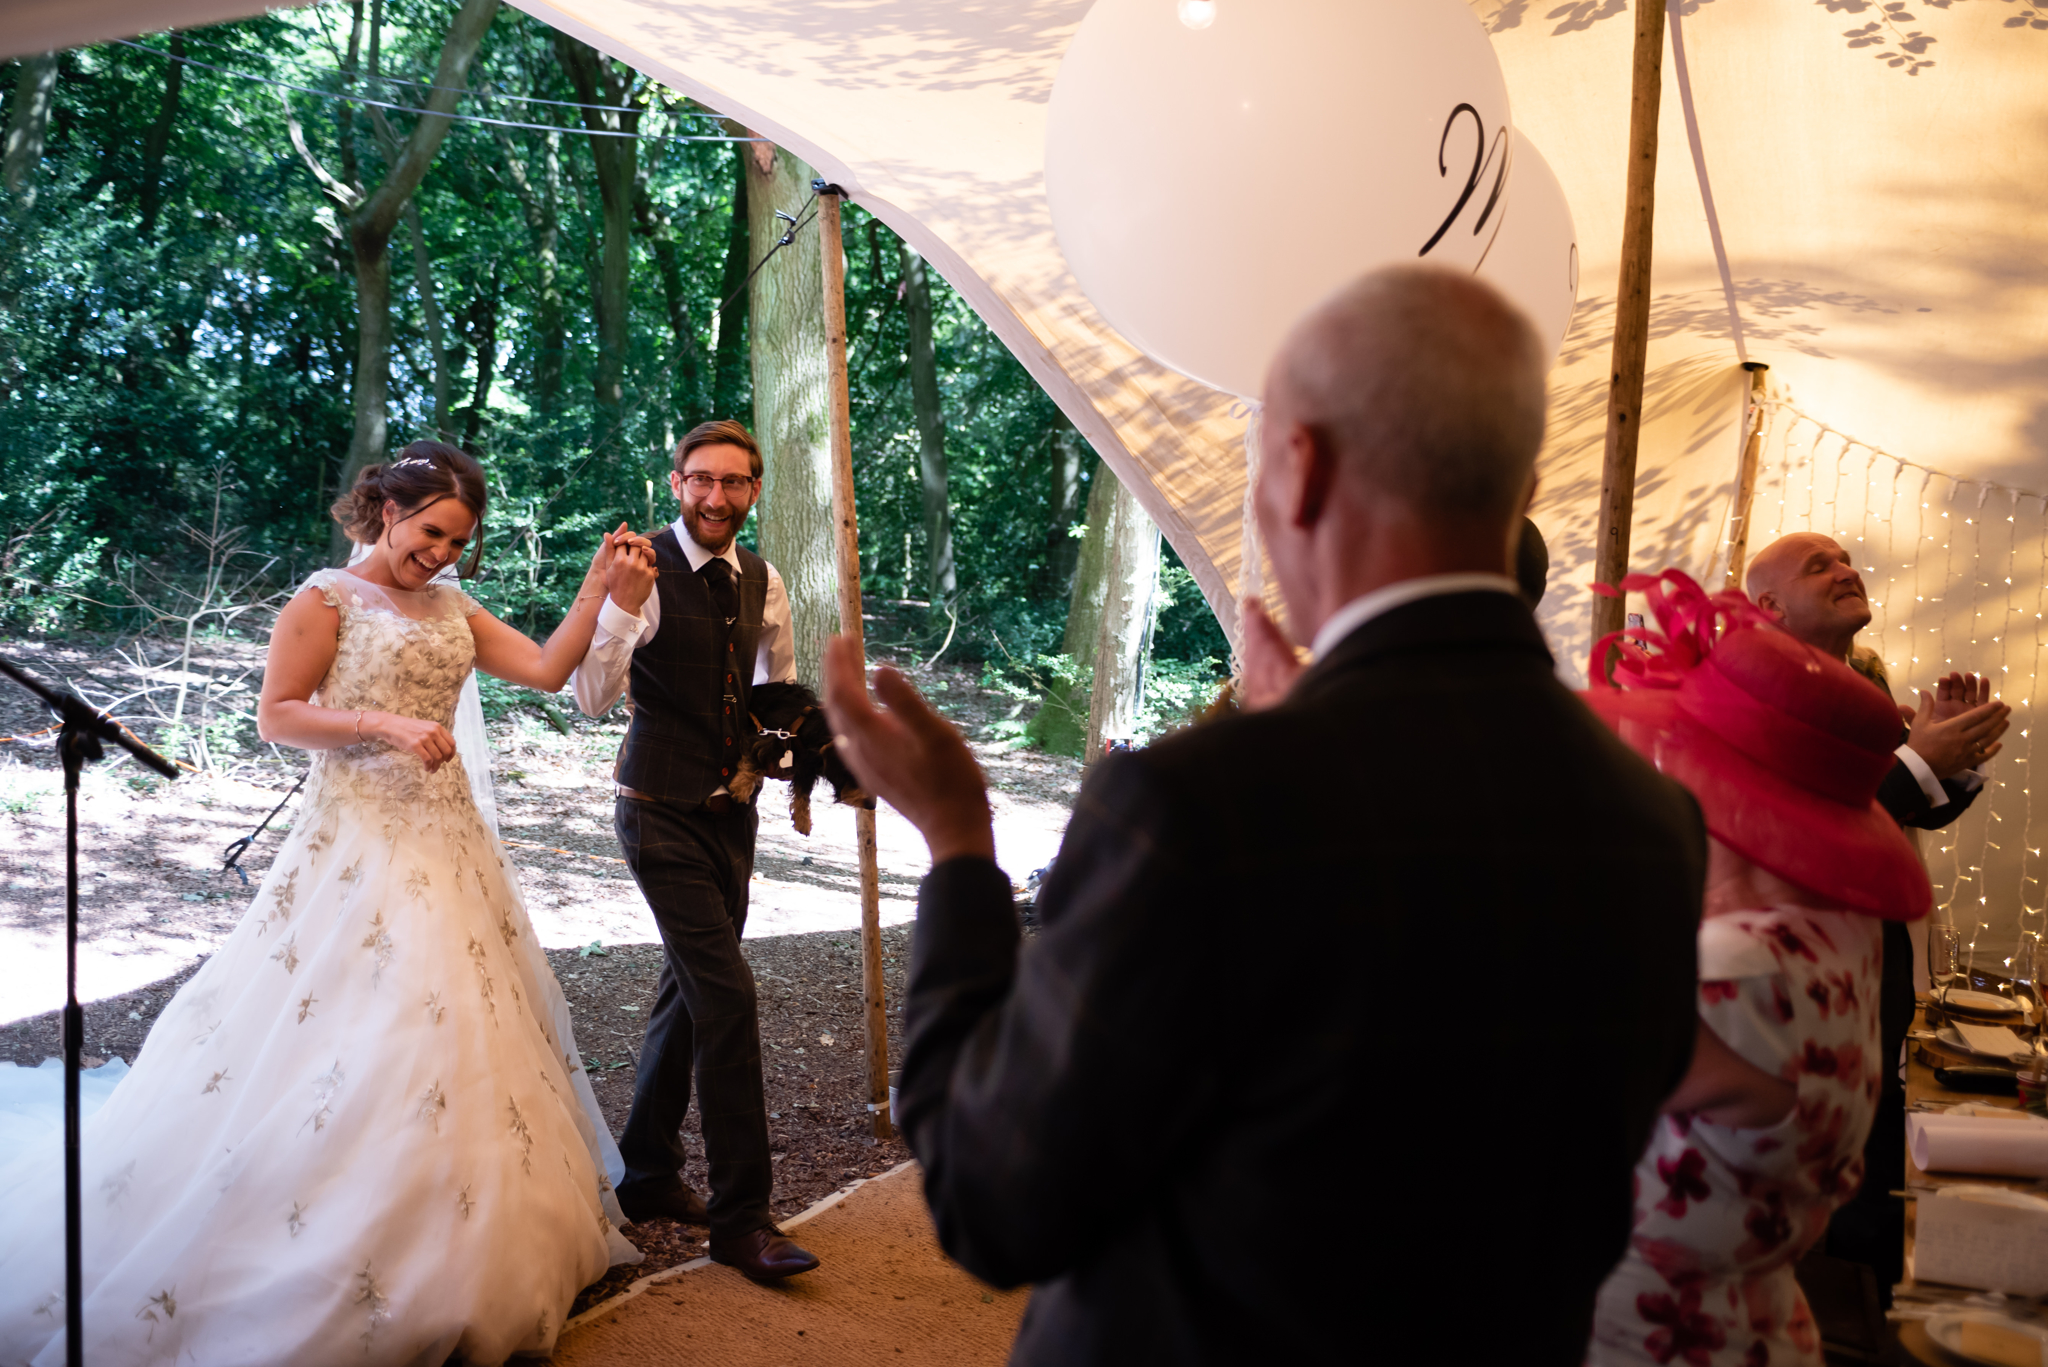 The bride and groom enter the stretched tent